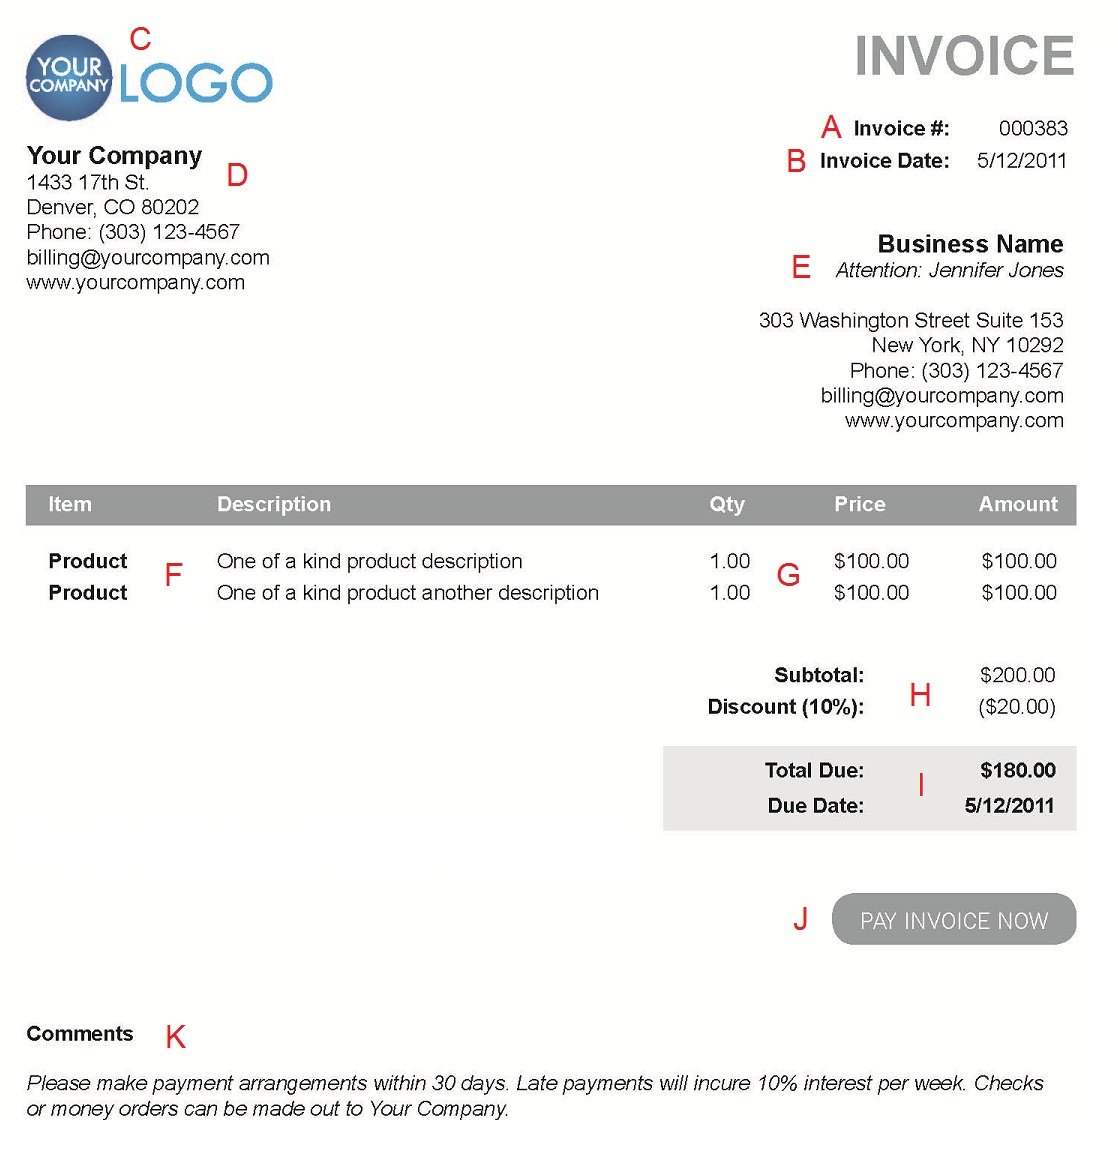 Coolmathgamesus  Ravishing The  Different Sections Of An Electronic Payment Invoice With Entrancing A  With Amazing How To Write A Money Receipt Also Receipts Forms In Addition Receipt For Rent Payment Template And Gross Receipts Tax Los Angeles As Well As How To Make Receipts Online Additionally Business Receipt Template Word From Paysimplecom With Coolmathgamesus  Entrancing The  Different Sections Of An Electronic Payment Invoice With Amazing A  And Ravishing How To Write A Money Receipt Also Receipts Forms In Addition Receipt For Rent Payment Template From Paysimplecom